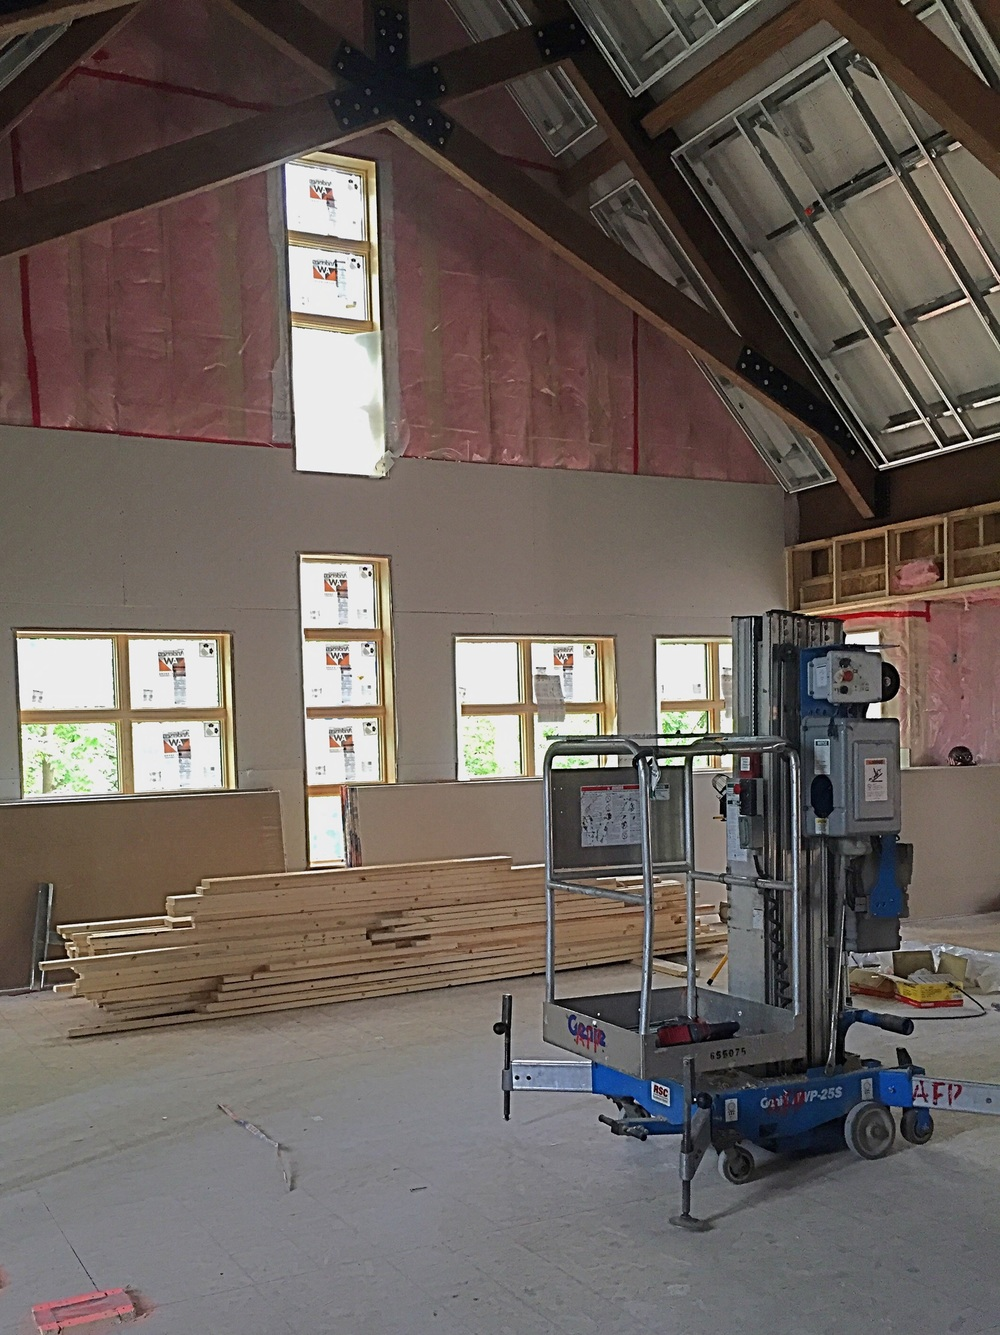 After attaching insulation to the walls of the new sanctuary, crews are now working on hanging drywall.